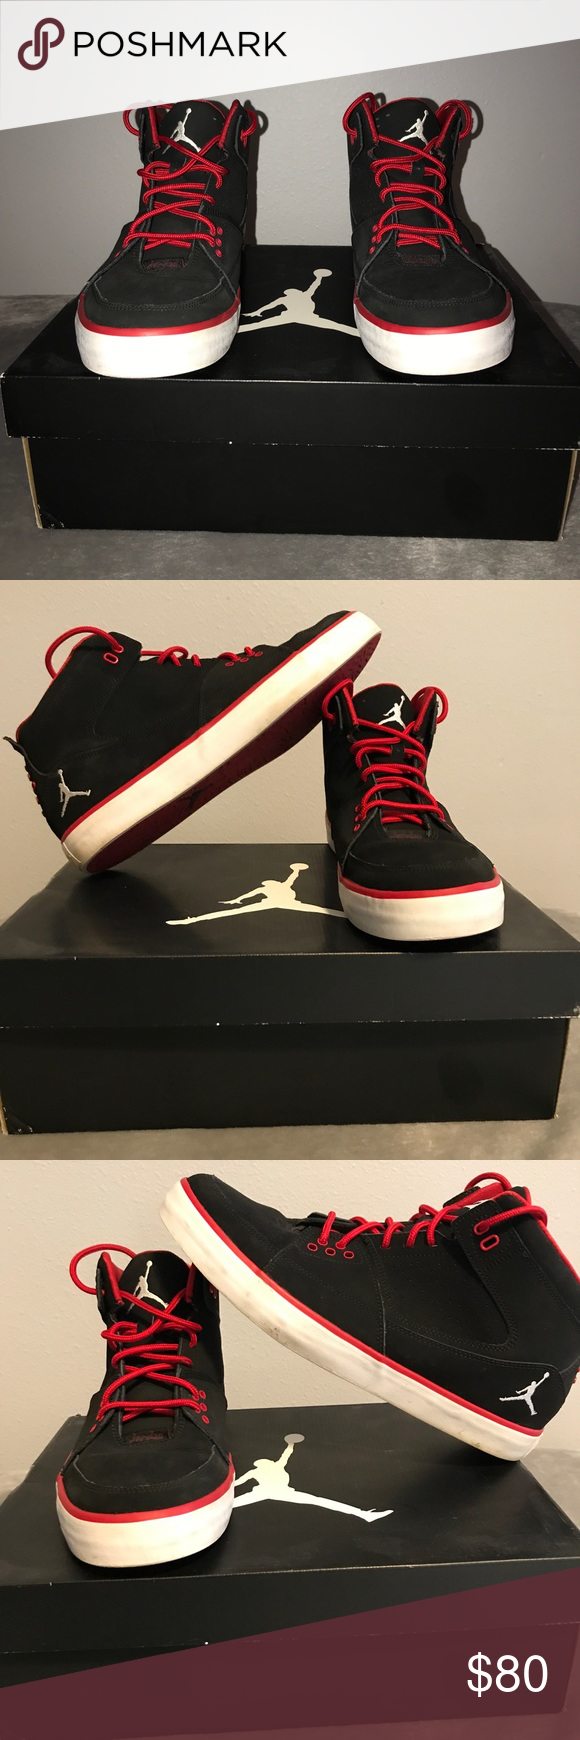 116152002d7966 Jordan Flight 23 AC • Worn a couple of times back in 2012. Been in my  closet ever since. Still smell brand new because of the few times I wore  them and ...